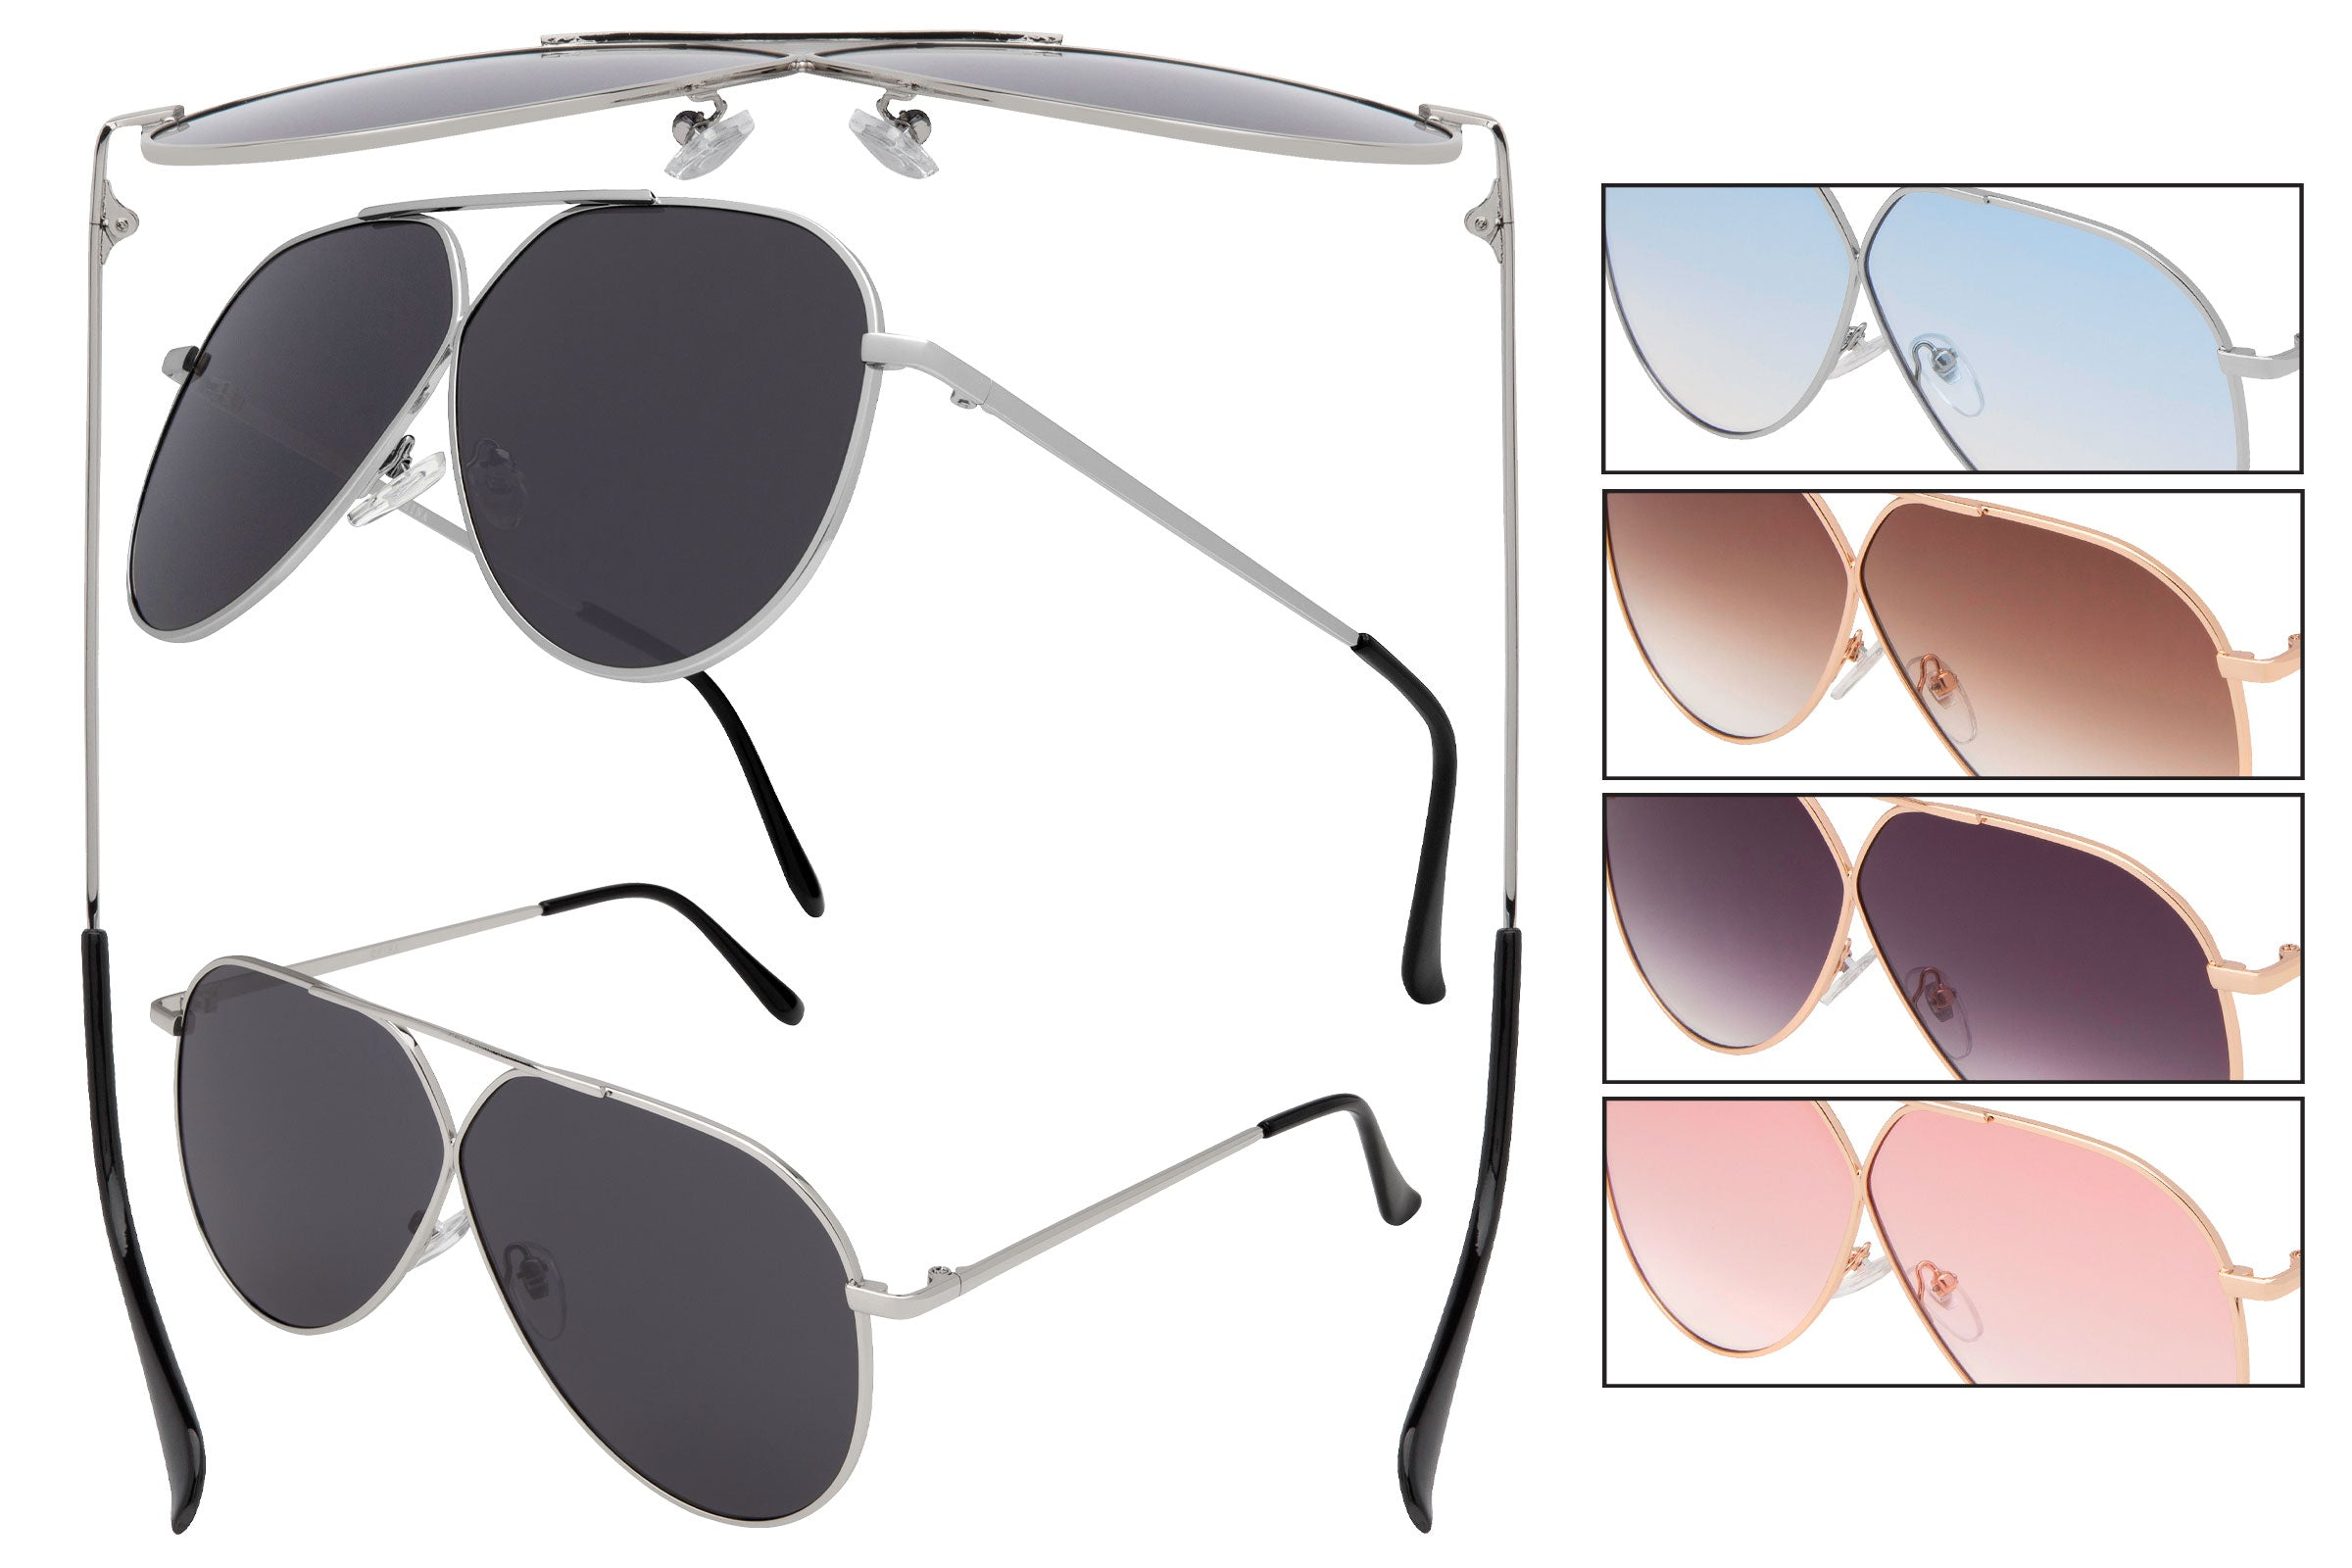 CD25 - Women's Pilot Fashion Sunglasses